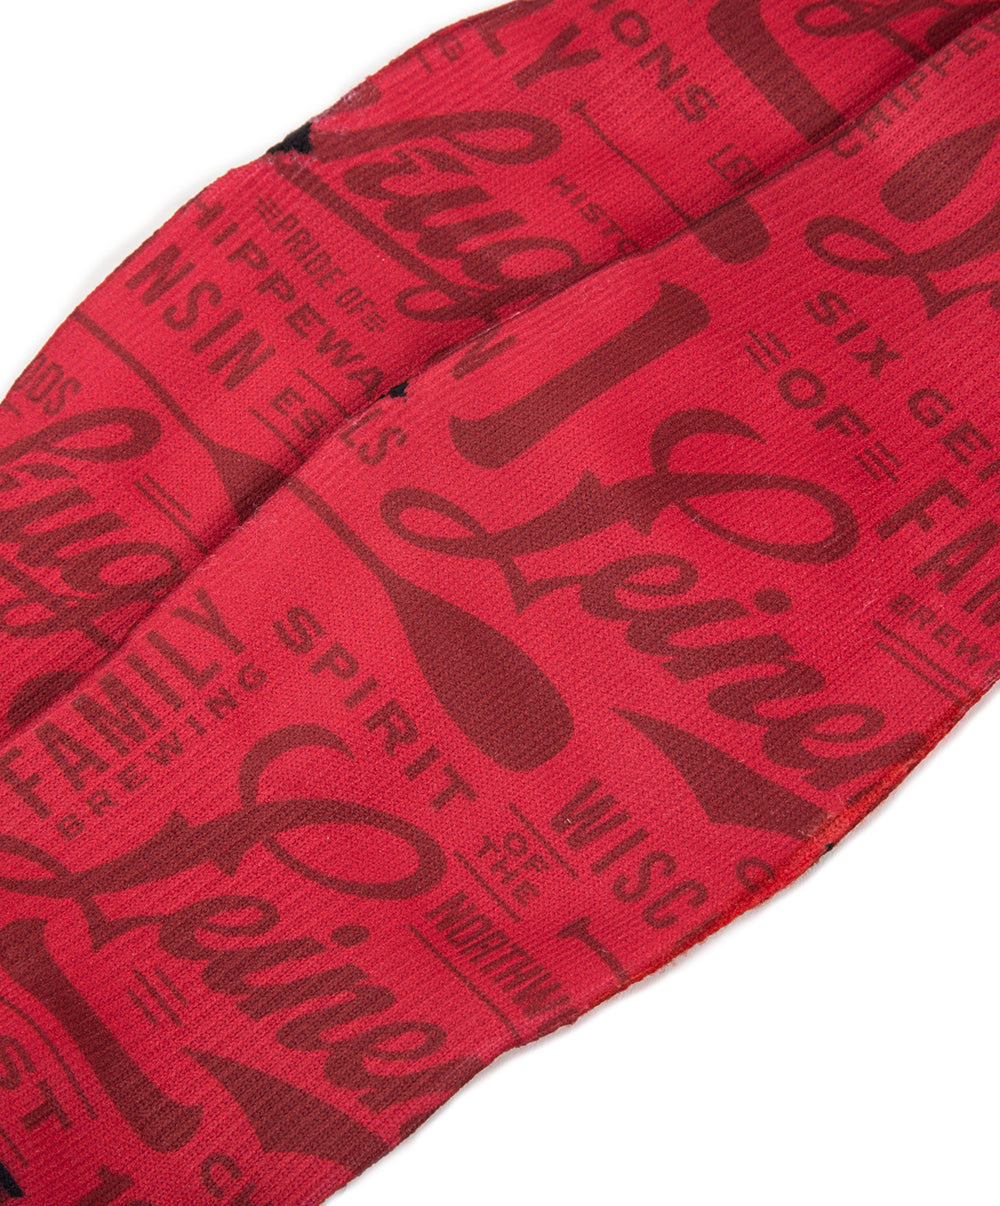 SUBLIMATED CANOE GRAPHIC SOCKS